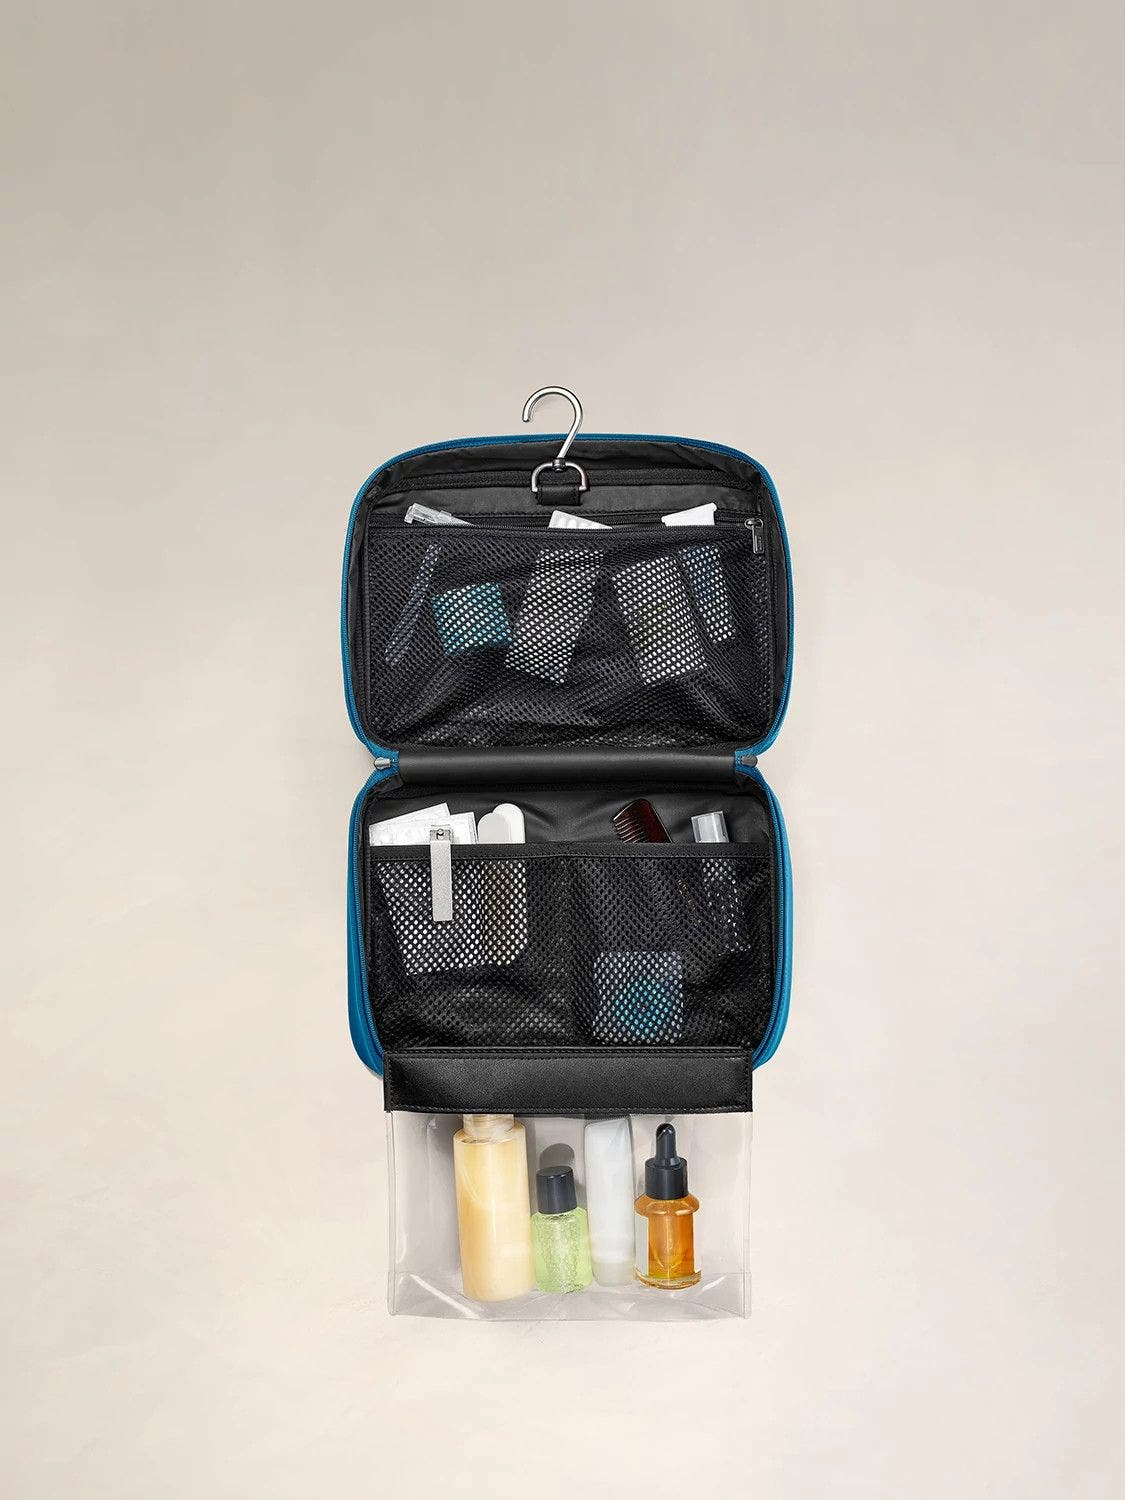 An internal view of a deep teal toiletry bag packed with travel accessories within mesh pockets.